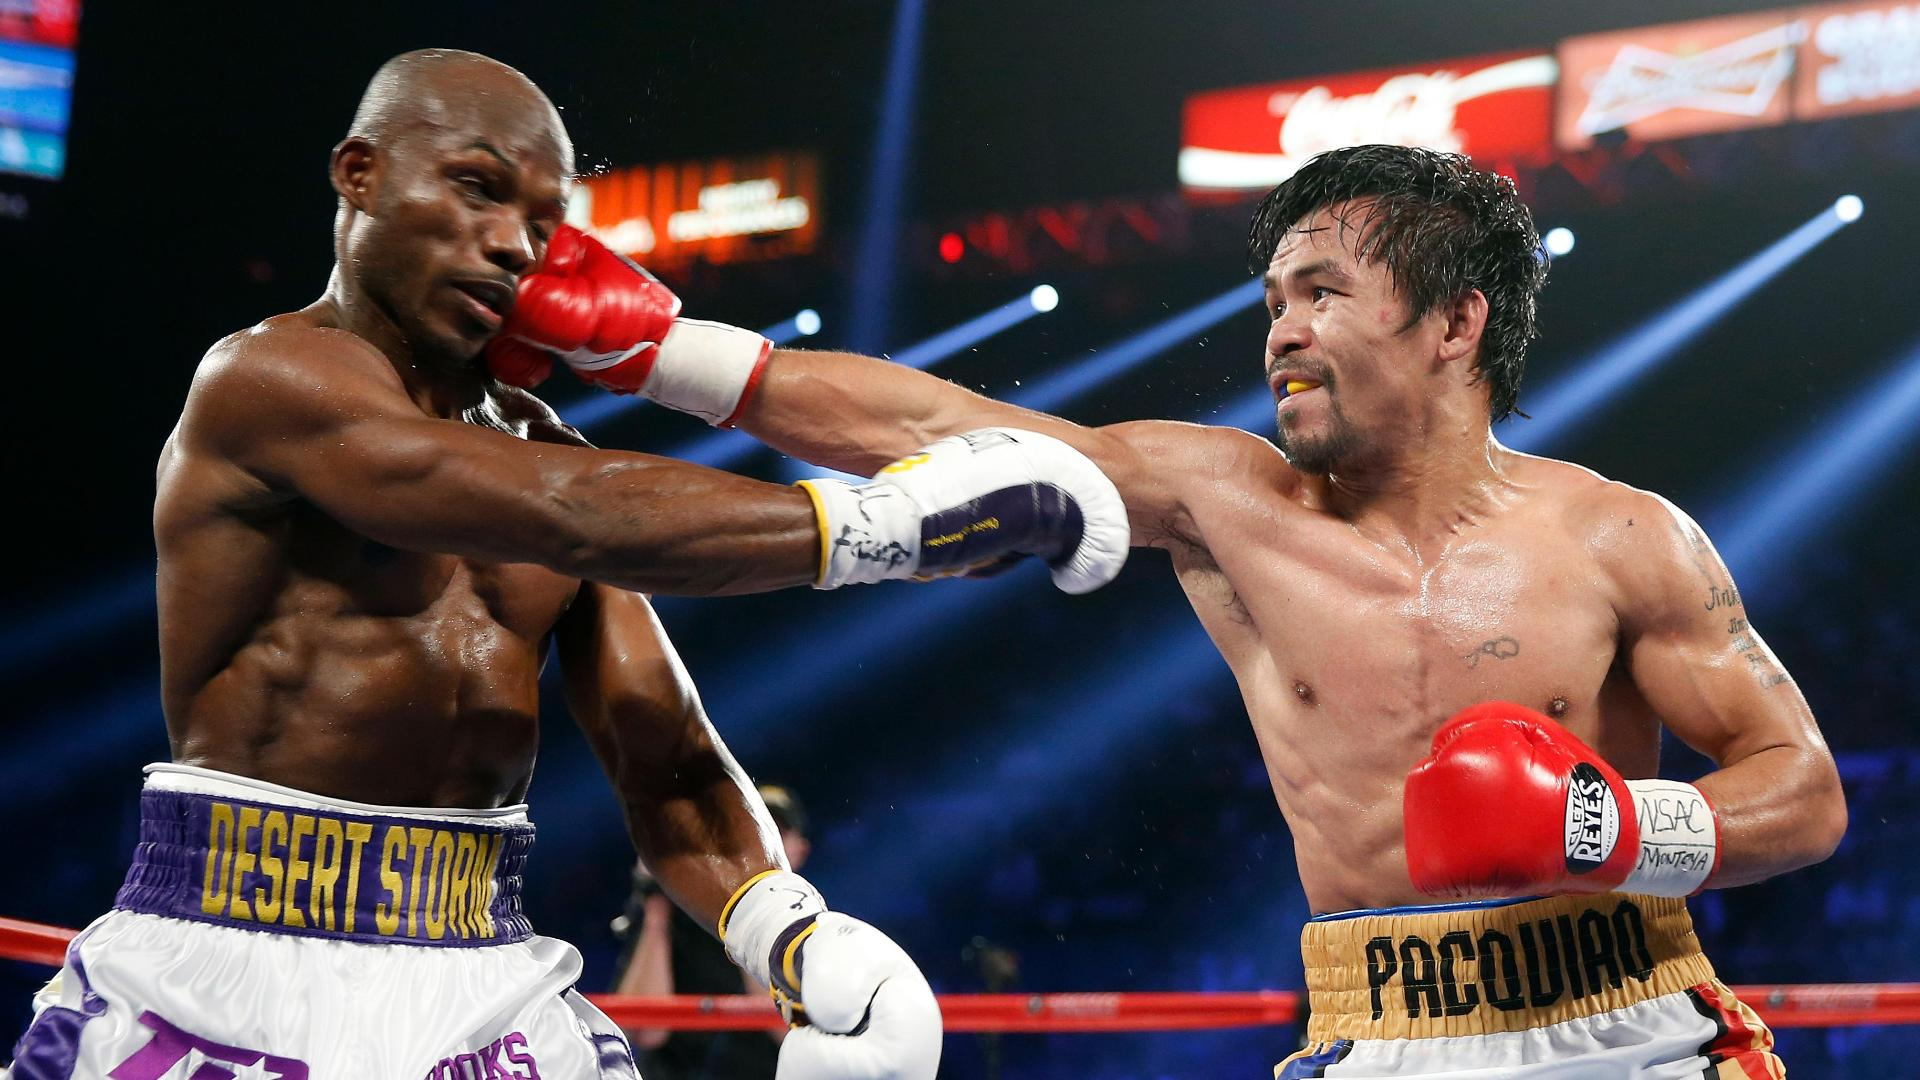 http://a.espncdn.com/media/motion/2016/0410/dm_160410_Pacquiao_Bradley_Highlight992/dm_160410_Pacquiao_Bradley_Highlight992.jpg